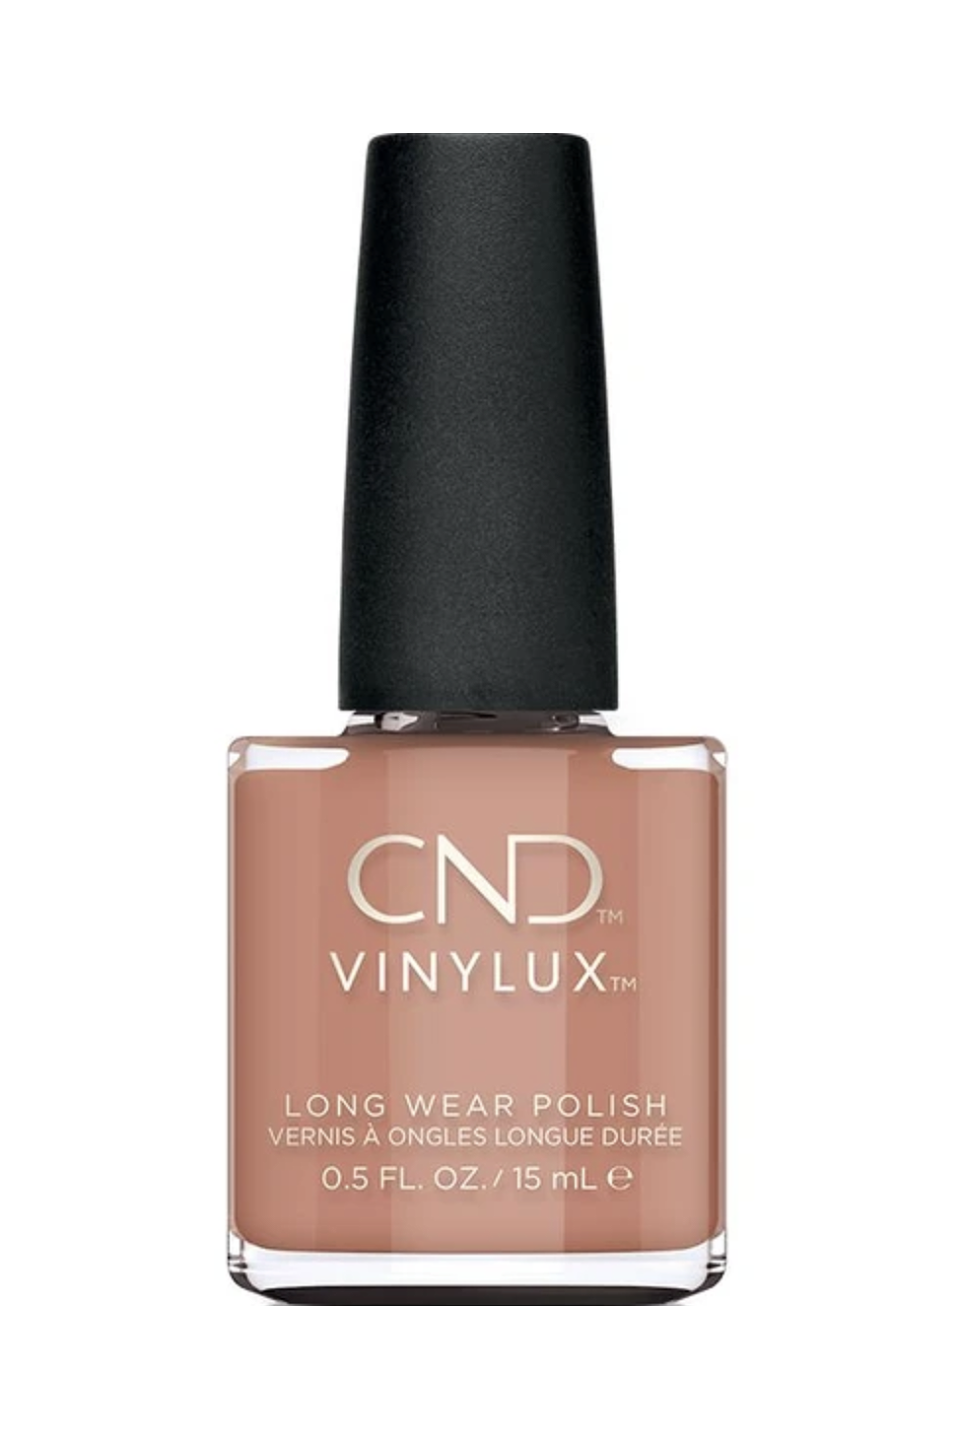 """<p><strong>CND</strong></p><p>ulta.com</p><p><strong>$10.50</strong></p><p><a href=""""https://go.redirectingat.com?id=74968X1596630&url=https%3A%2F%2Fwww.ulta.com%2Fvinylux-english-garden-collection%3FproductId%3Dpimprod2015742&sref=https%3A%2F%2Fwww.marieclaire.com%2Fbeauty%2Fg3965%2Ffall-nail-colors%2F"""" rel=""""nofollow noopener"""" target=""""_blank"""" data-ylk=""""slk:SHOP IT"""" class=""""link rapid-noclick-resp"""">SHOP IT</a></p><p>Beige doesn't equal boring. Take this sherbet shade, for example: A muted neutral with just enough depth to make a statement and softness to go with literally anything. </p>"""